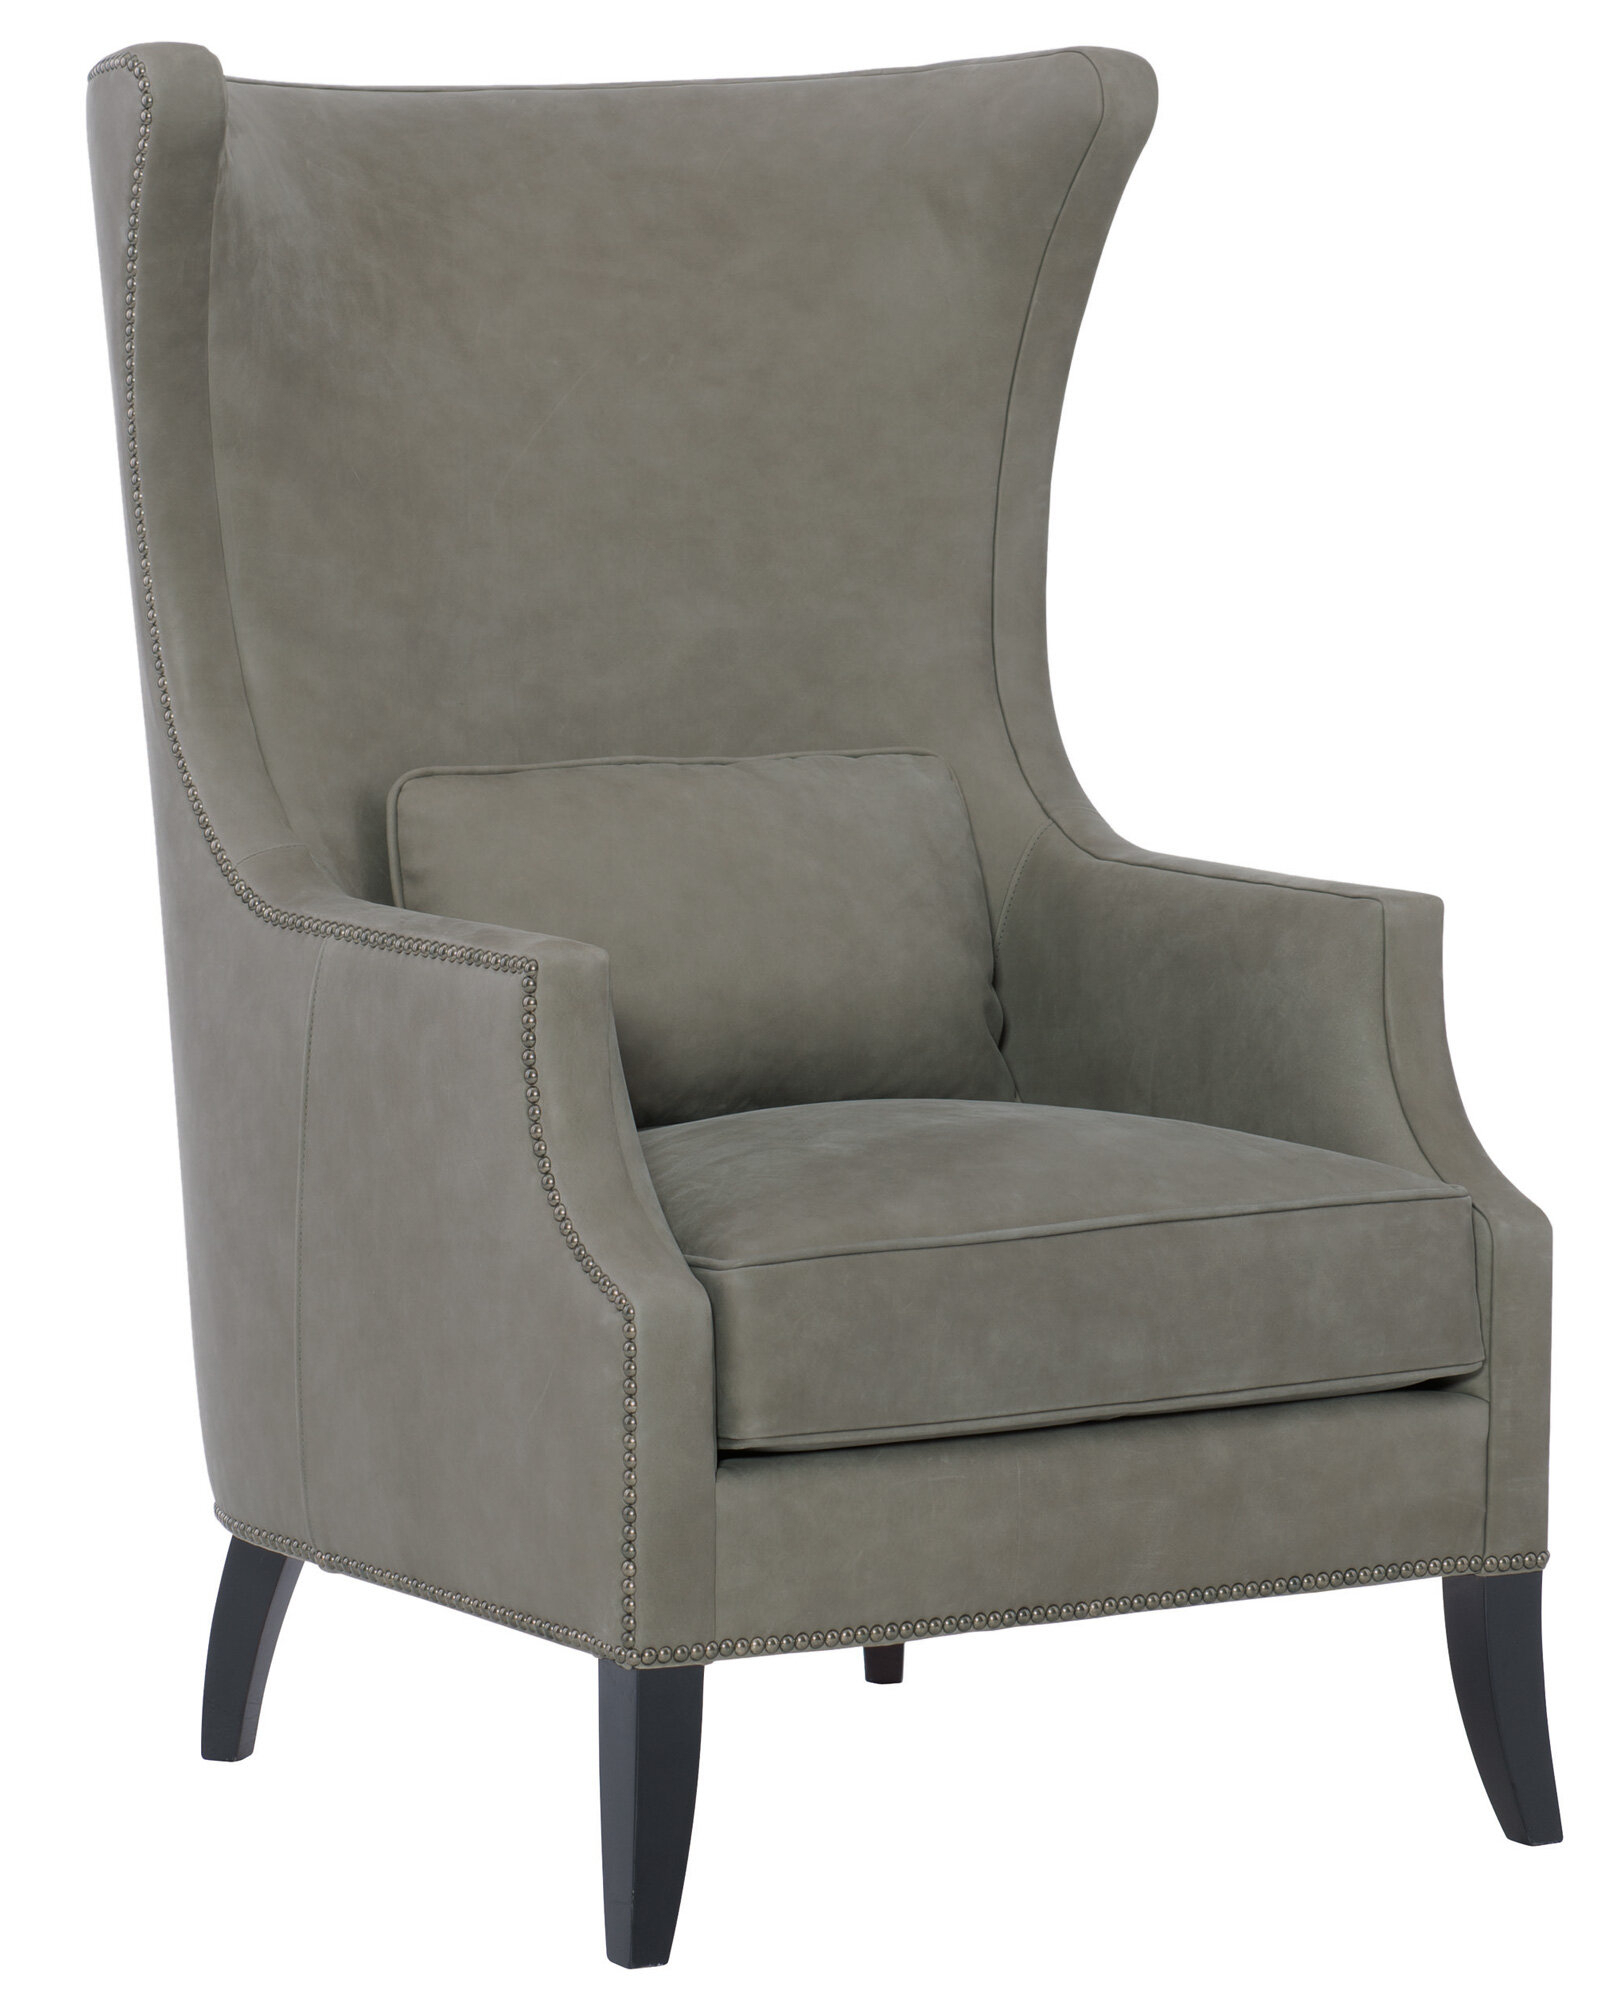 Leather Wingback Accent Chairs You'Ll Love In 2021 | Wayfair Inside Gallin Wingback Chairs (View 4 of 15)